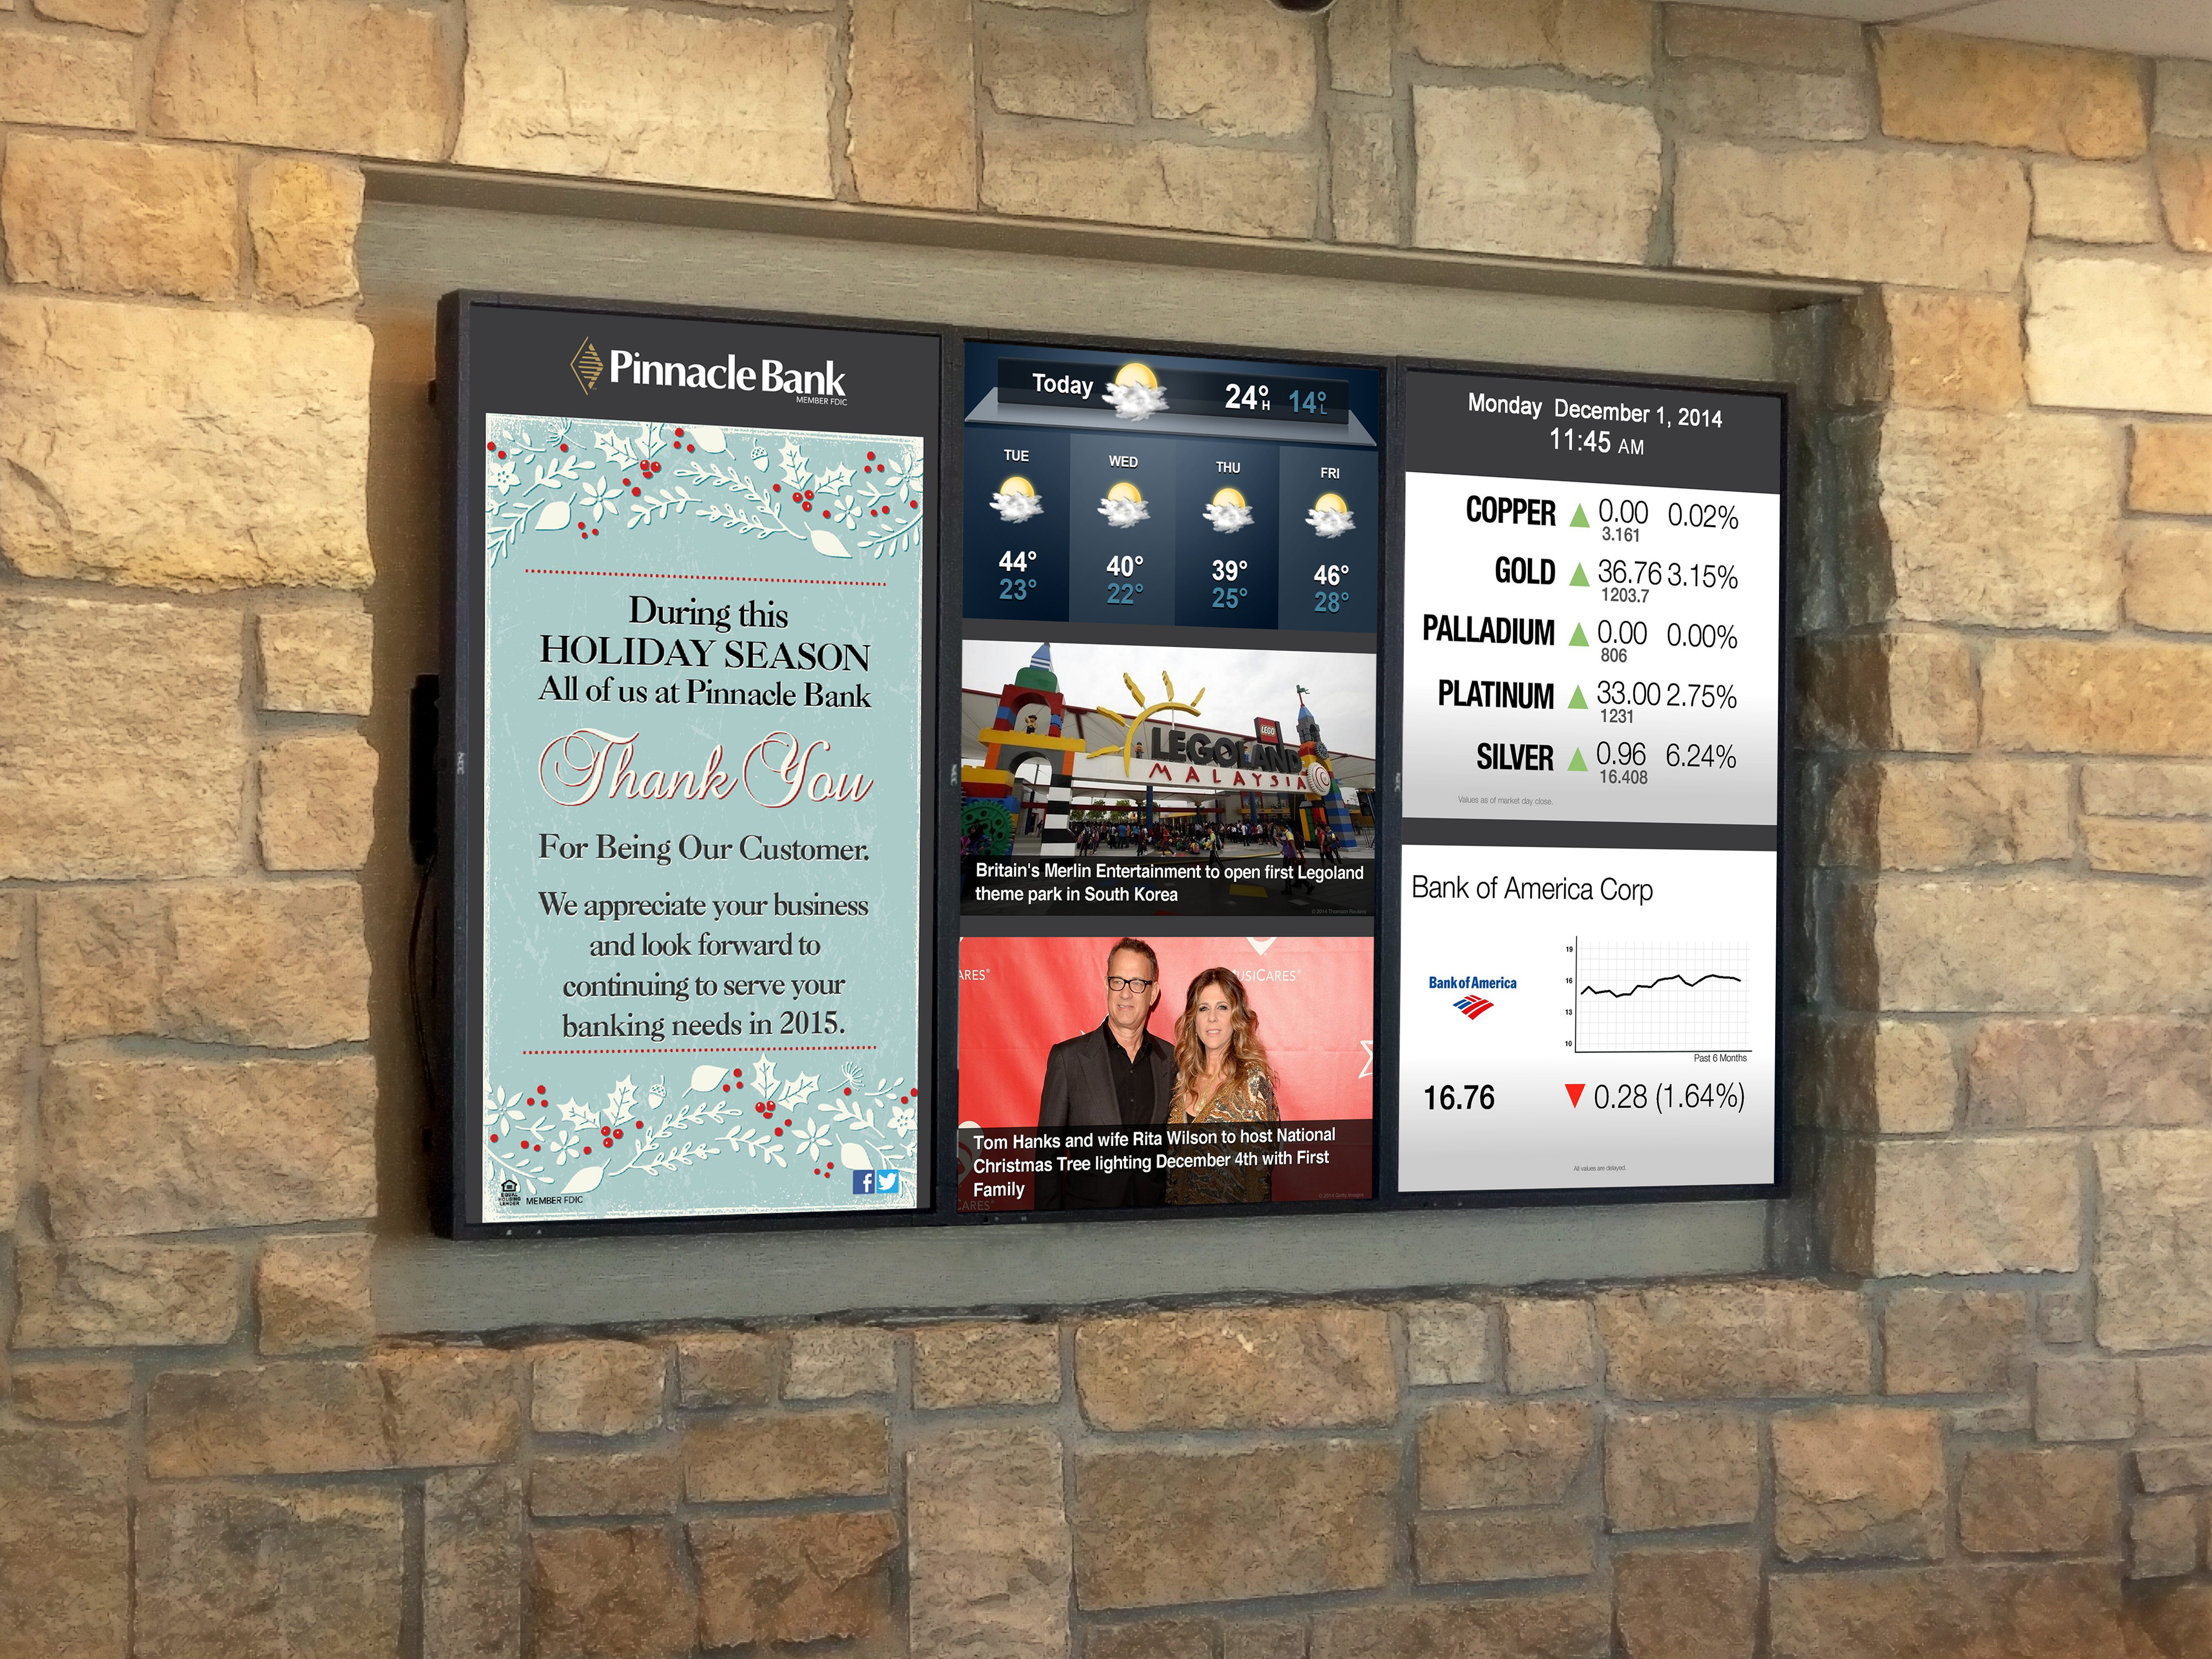 Pinnacle Bank's financial digital signage distributes stock information, news, weather, and announcements.